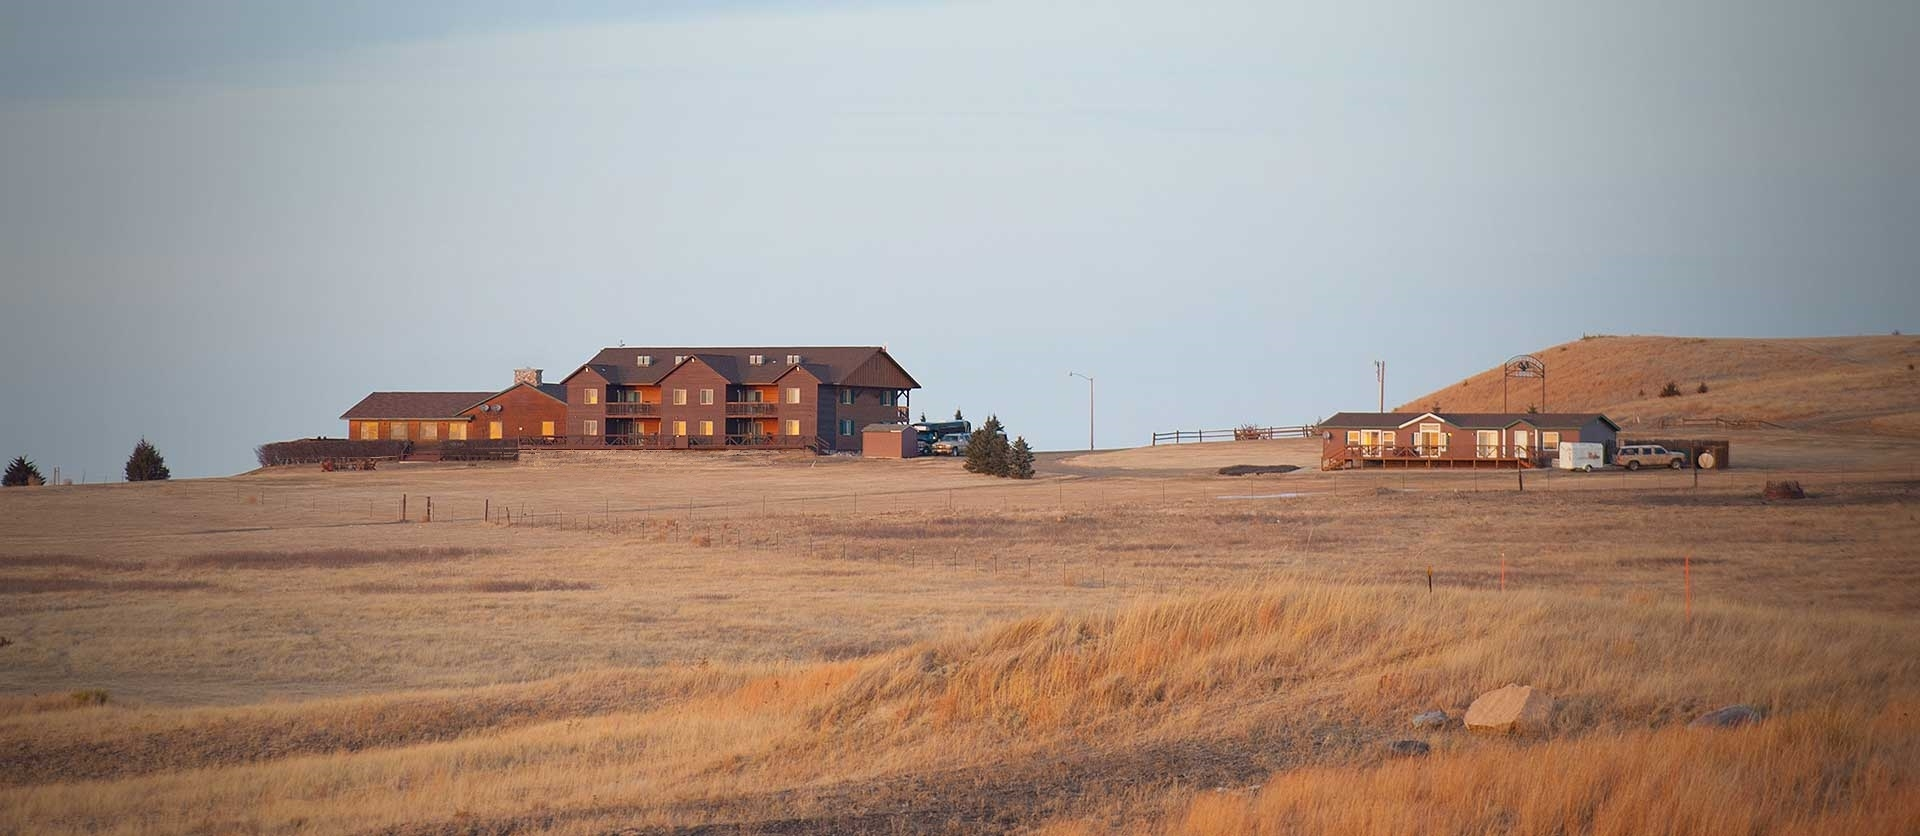 Hunting Lodge South Dakota